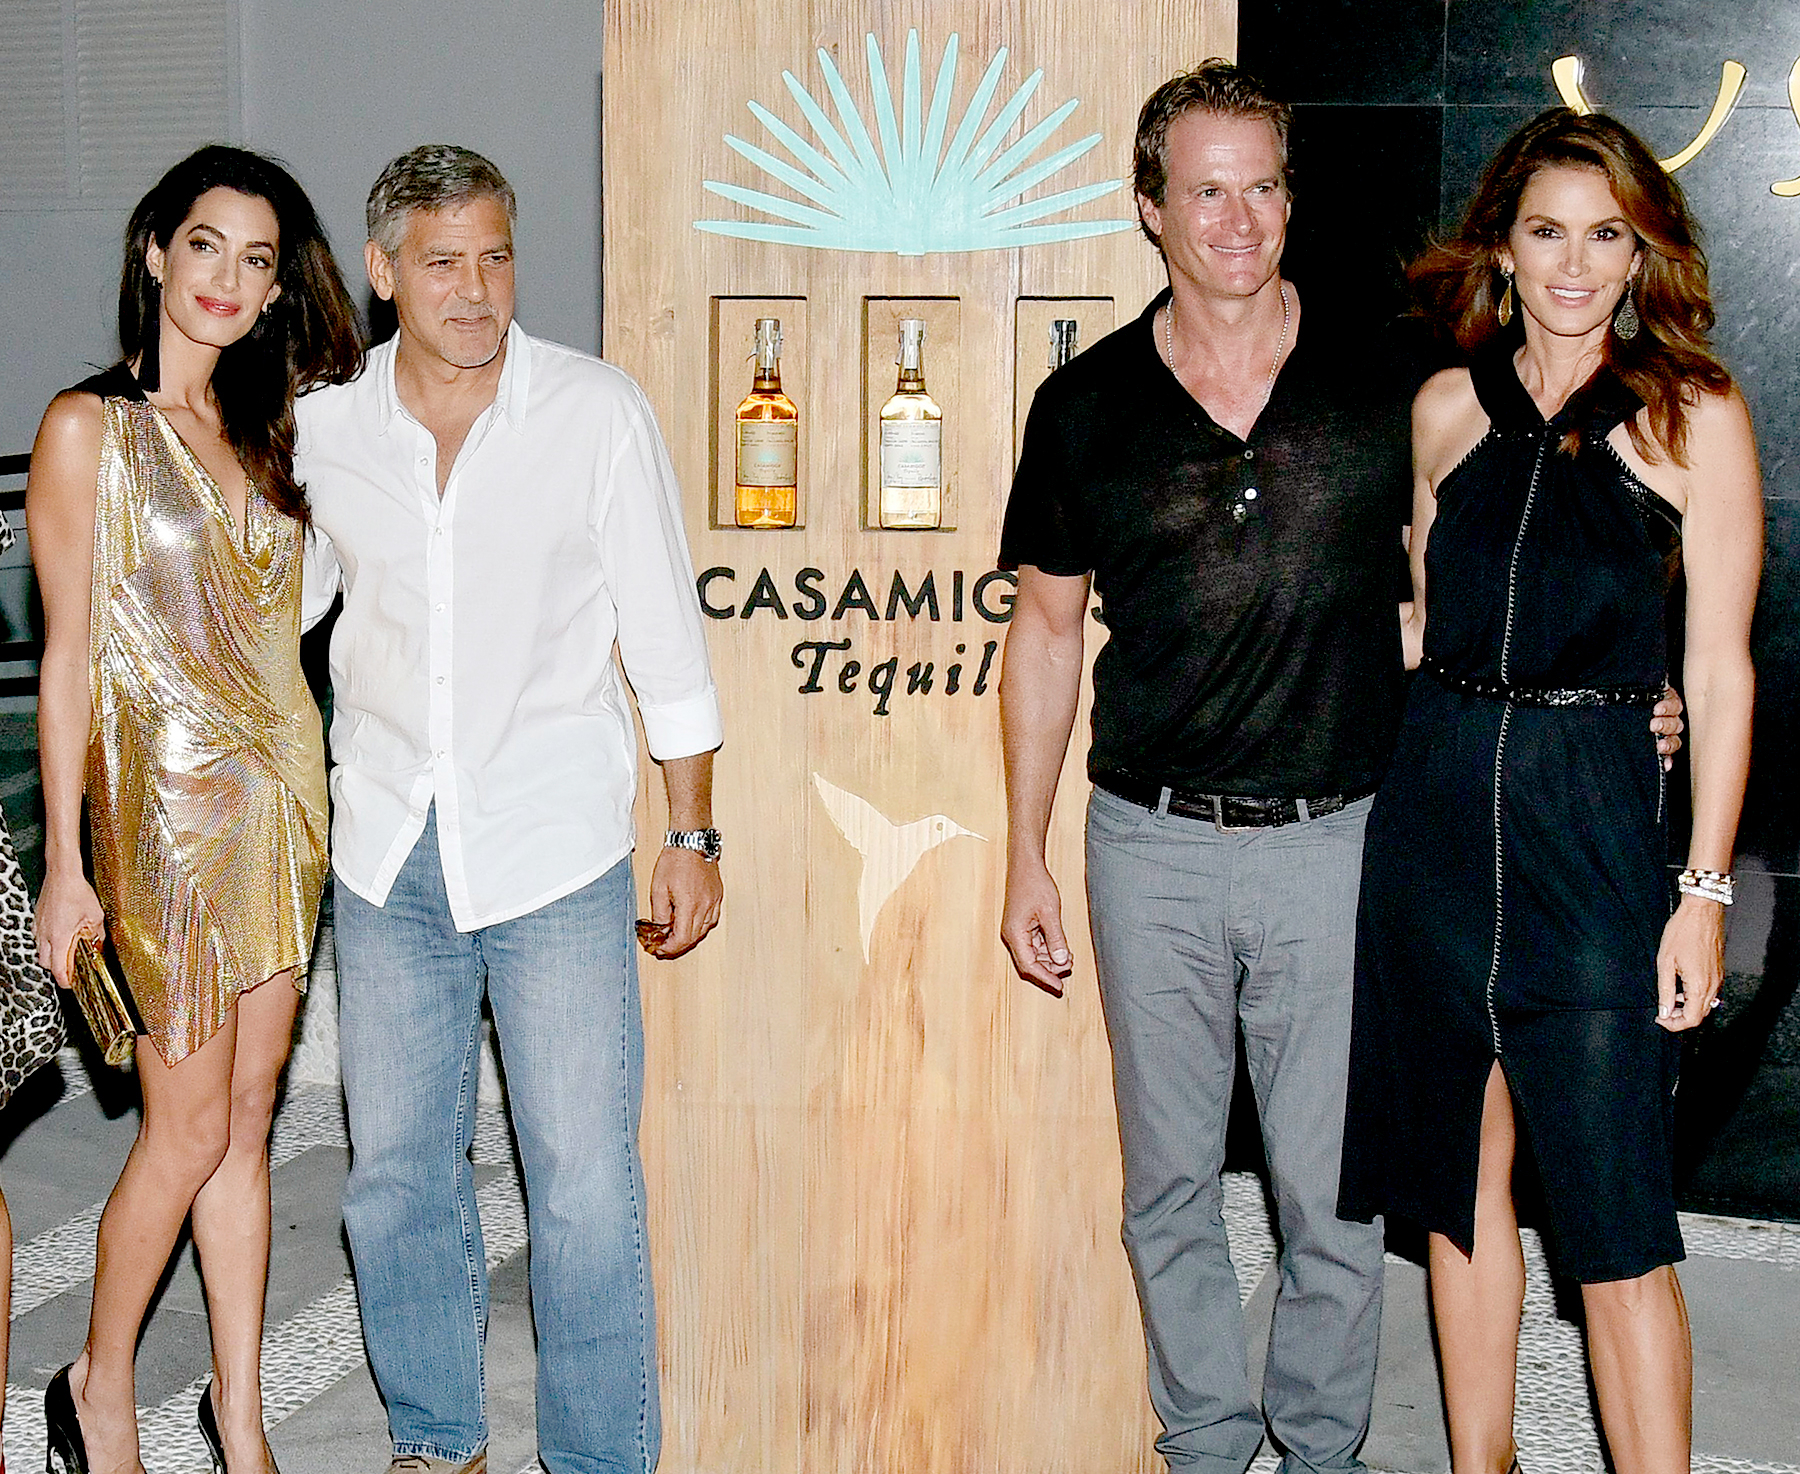 Amal Alamuddin, George Clooney, Rande Gerber and Cindy Crawford host the official launch of Casamigos Tequila in Ibiza, at Ushuaia Ibiza Beach hotel on August 23, 2015 in Ibiza, Spain.